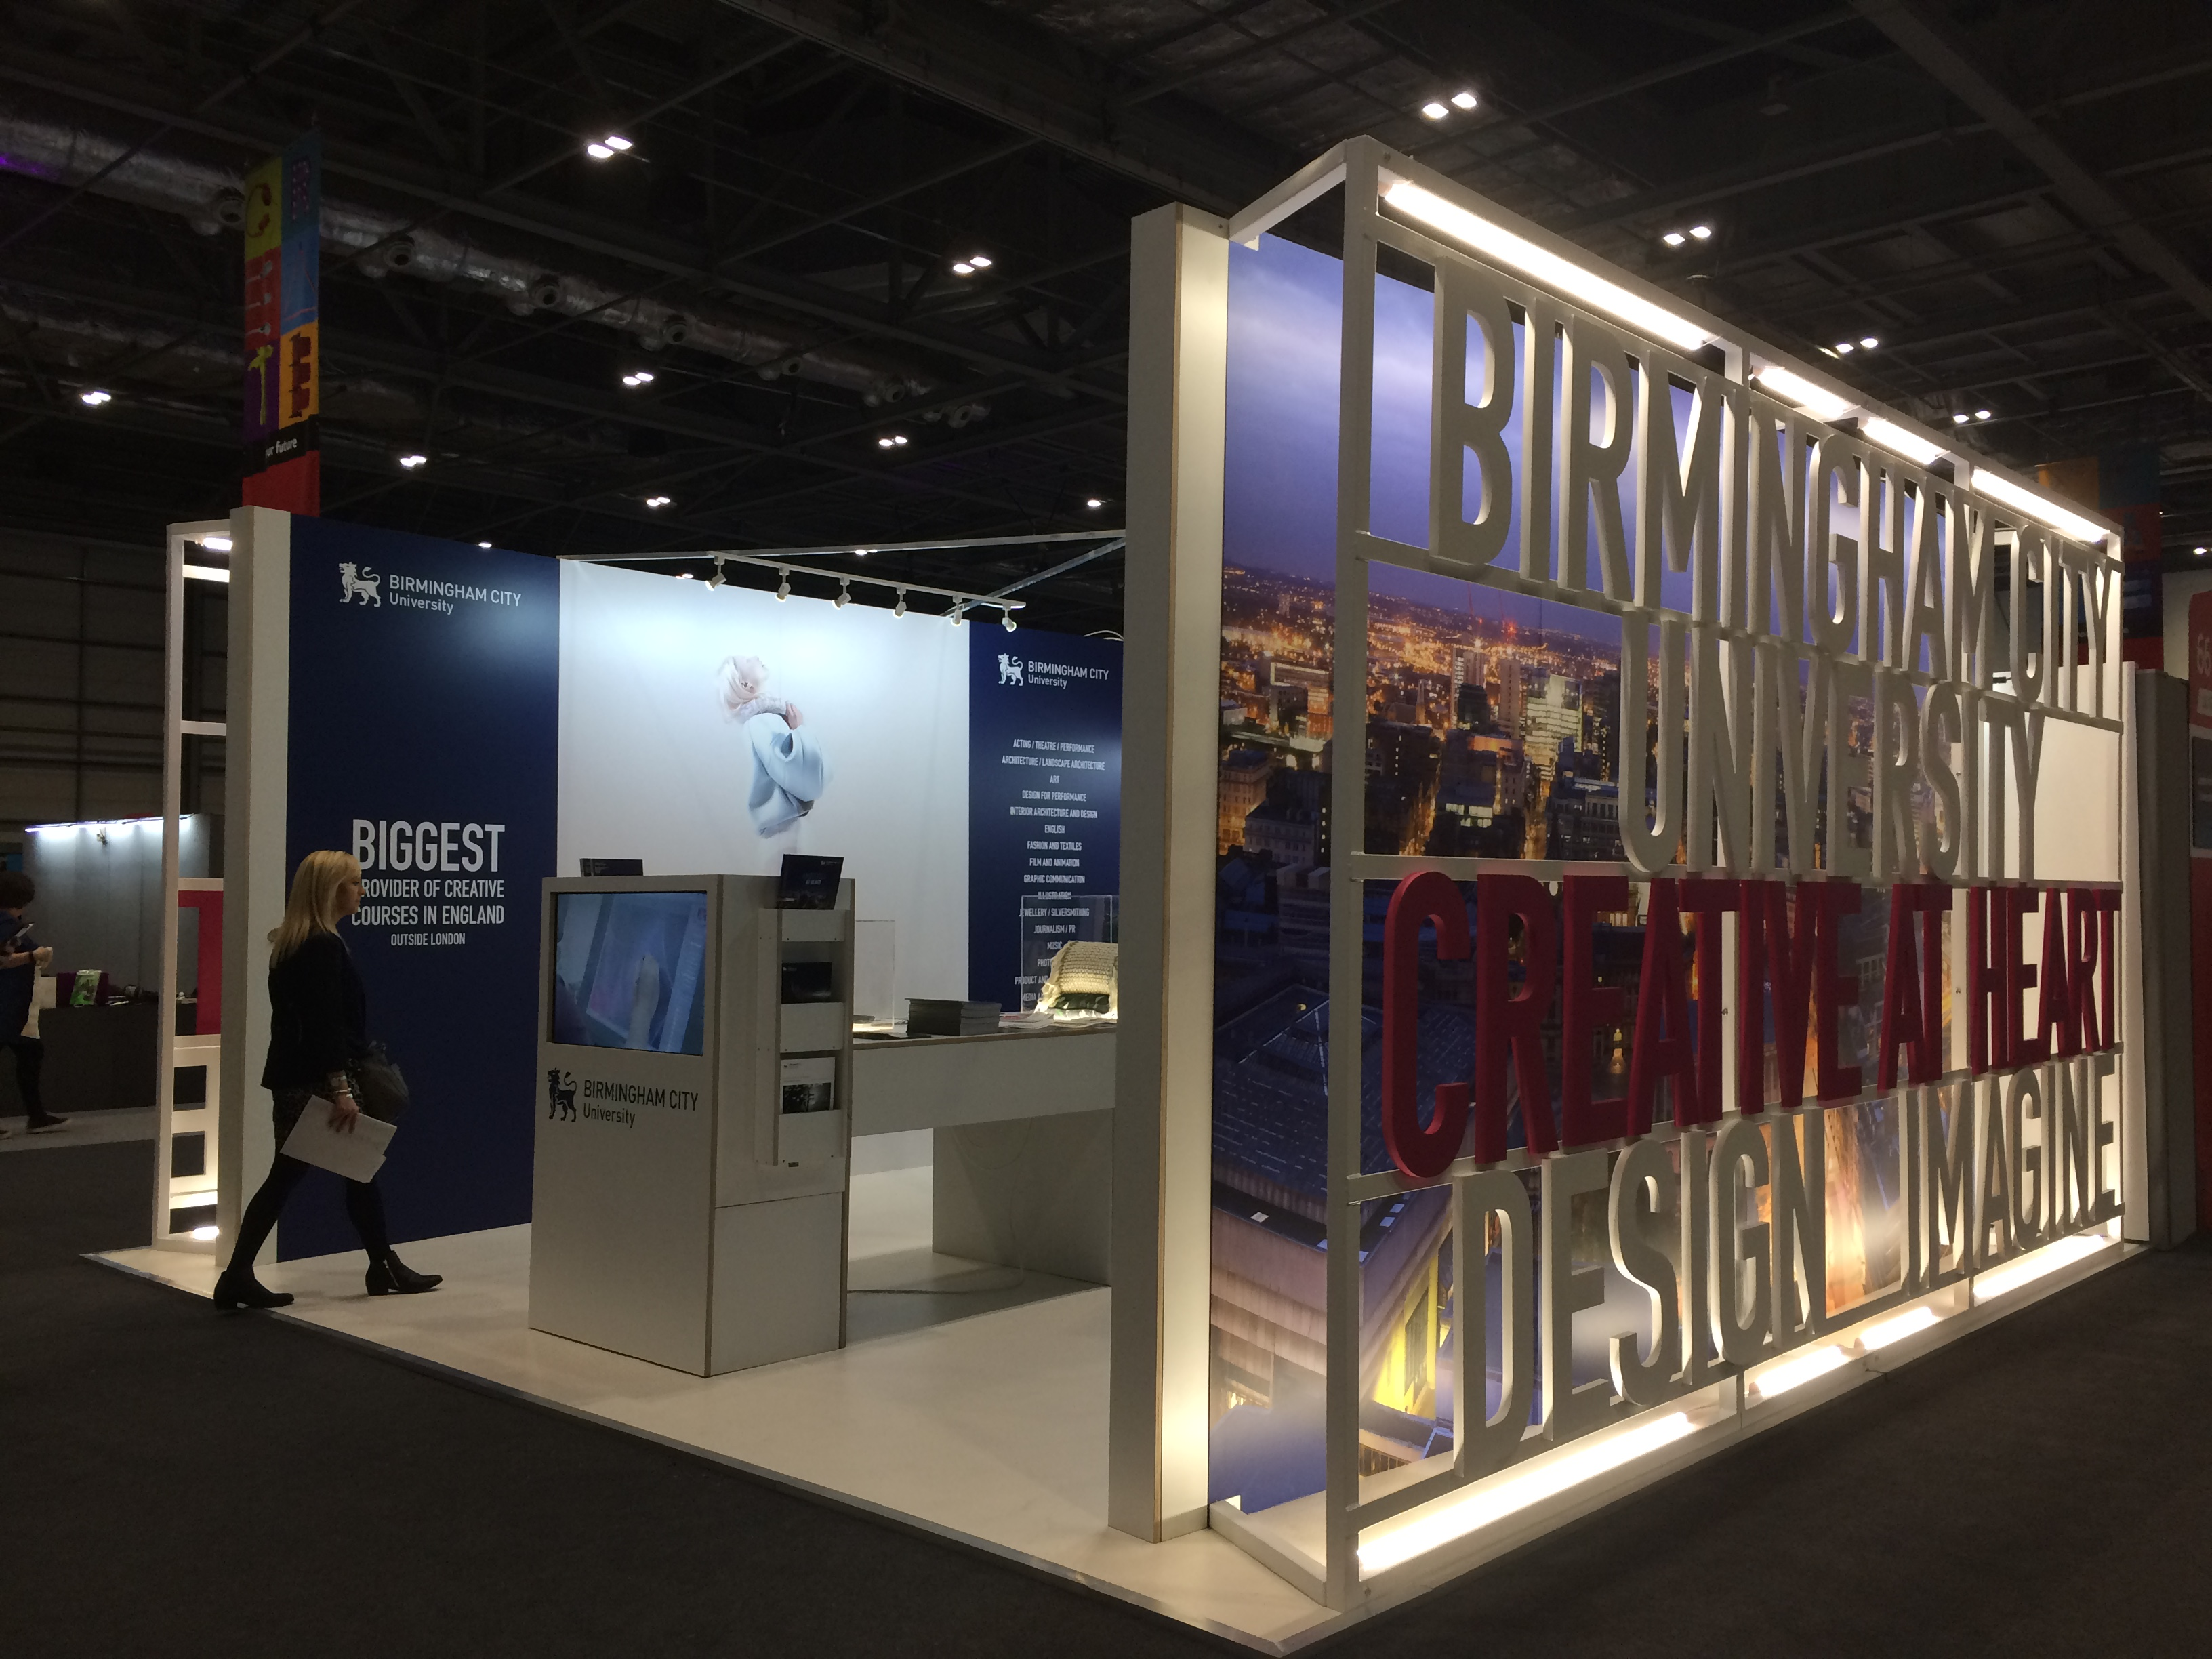 Jewelry Exhibition Stand Design : Plane structure birmingham city university: exhibition stand